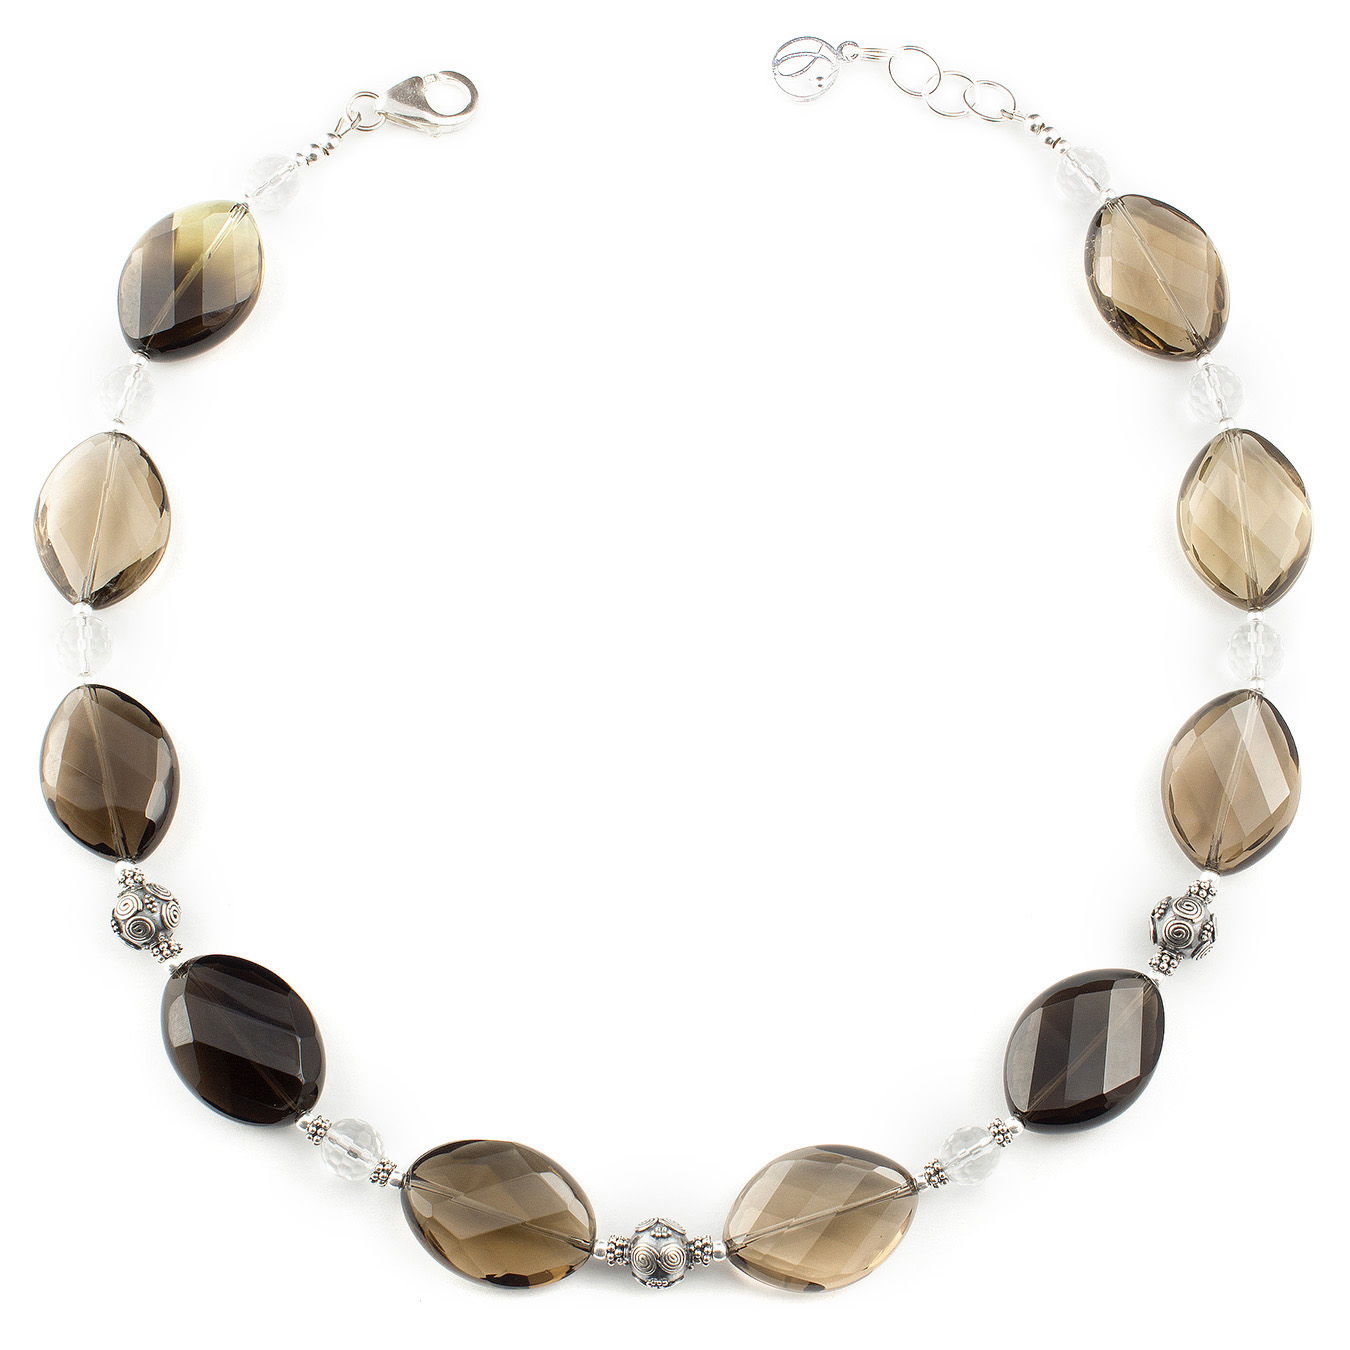 Customizable station necklace using citrine, smoky and clear quartz